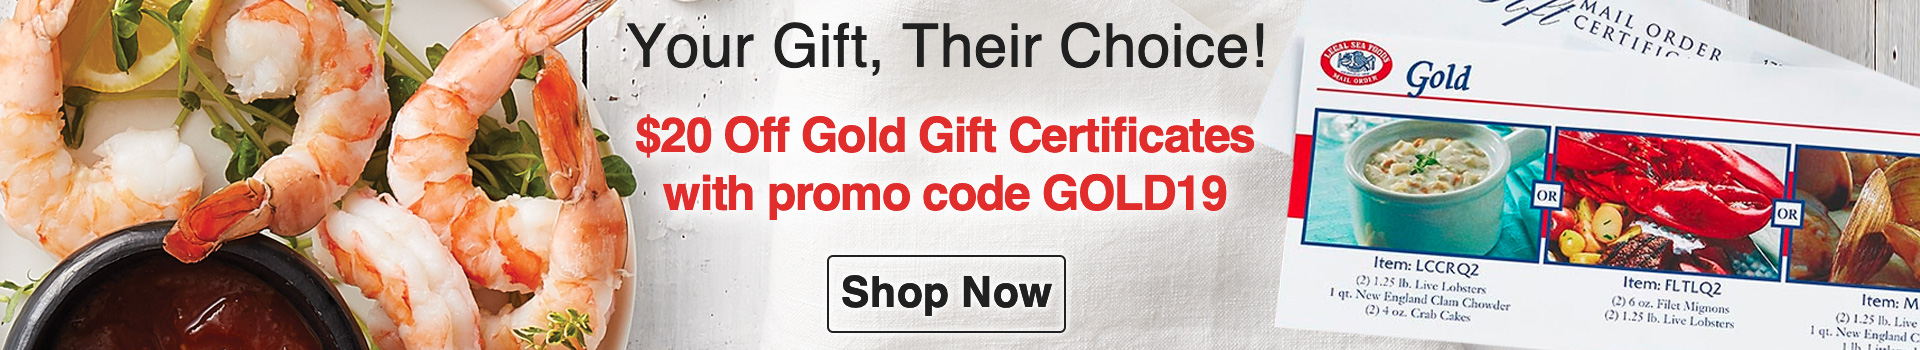 Save $20 on your Gold Dinner Certificate order with offer code GOLD19